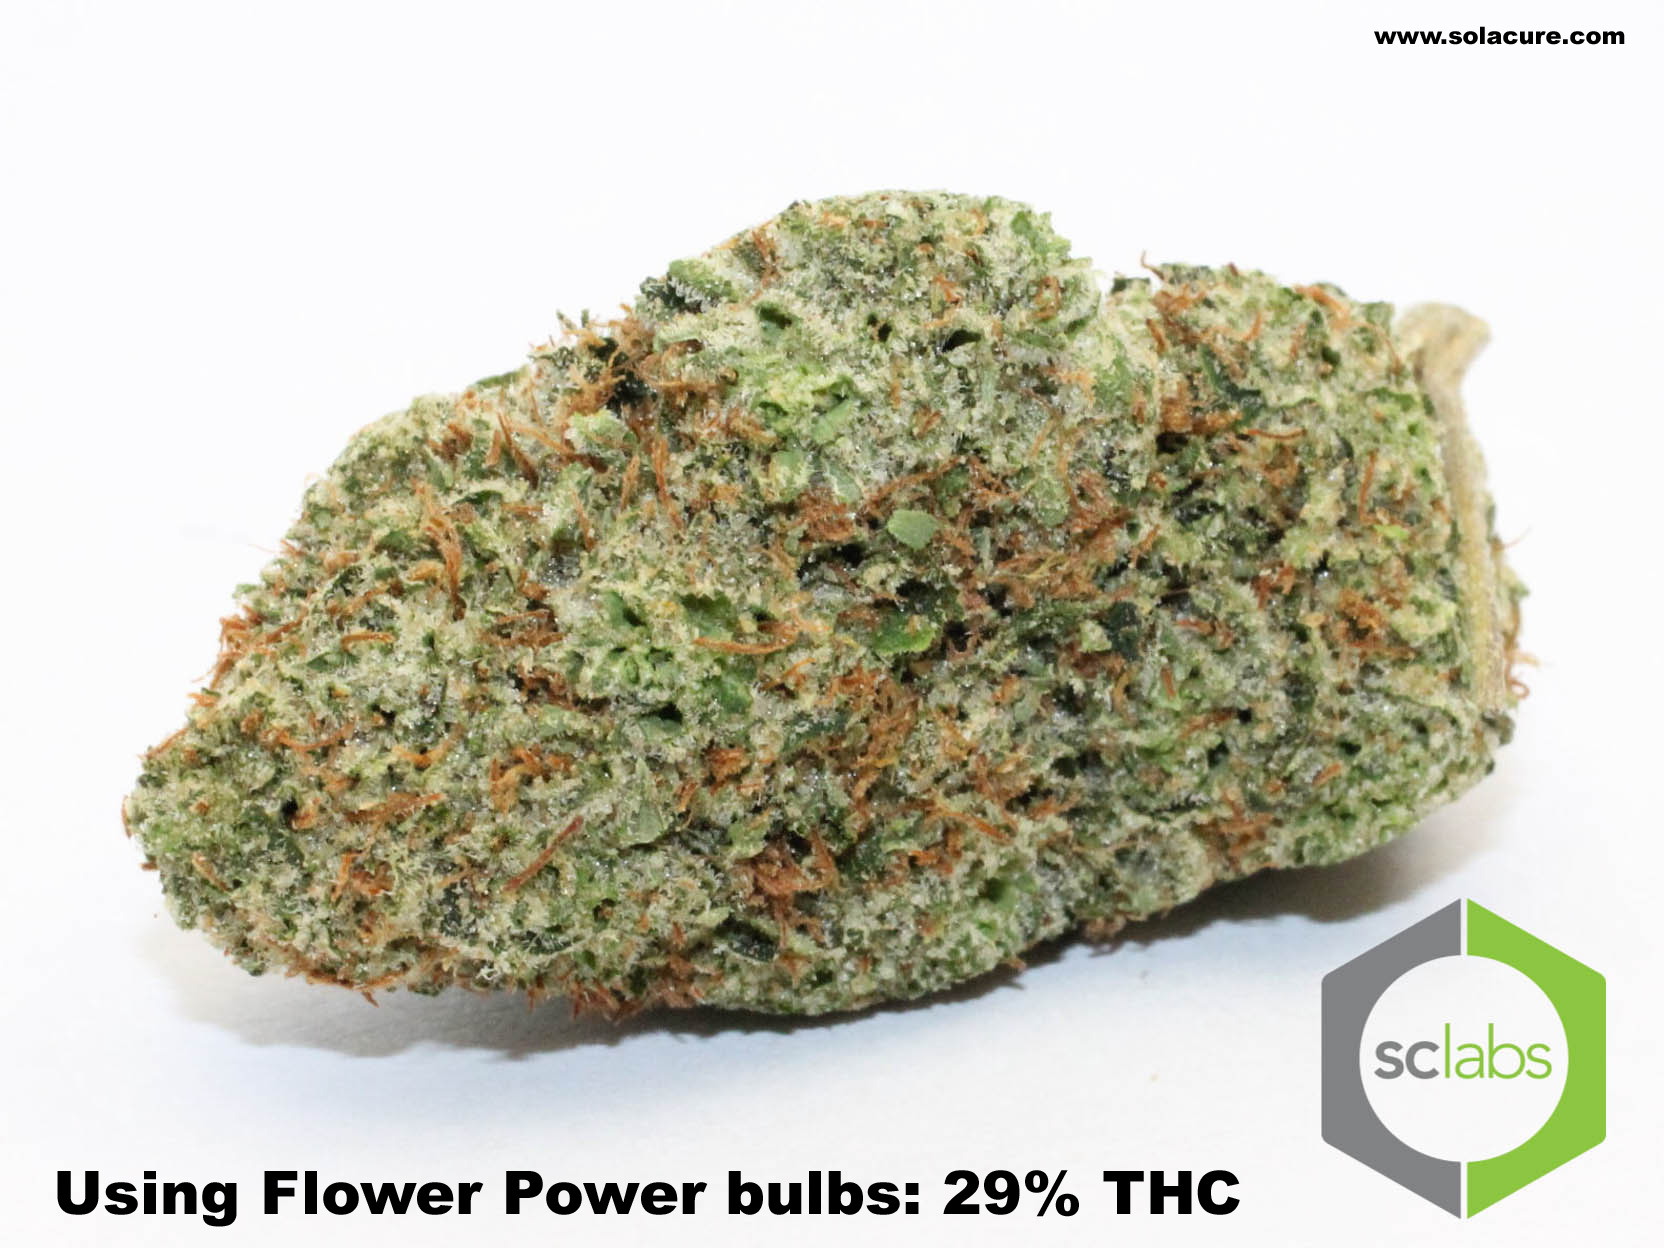 With Flower Power 29% THC